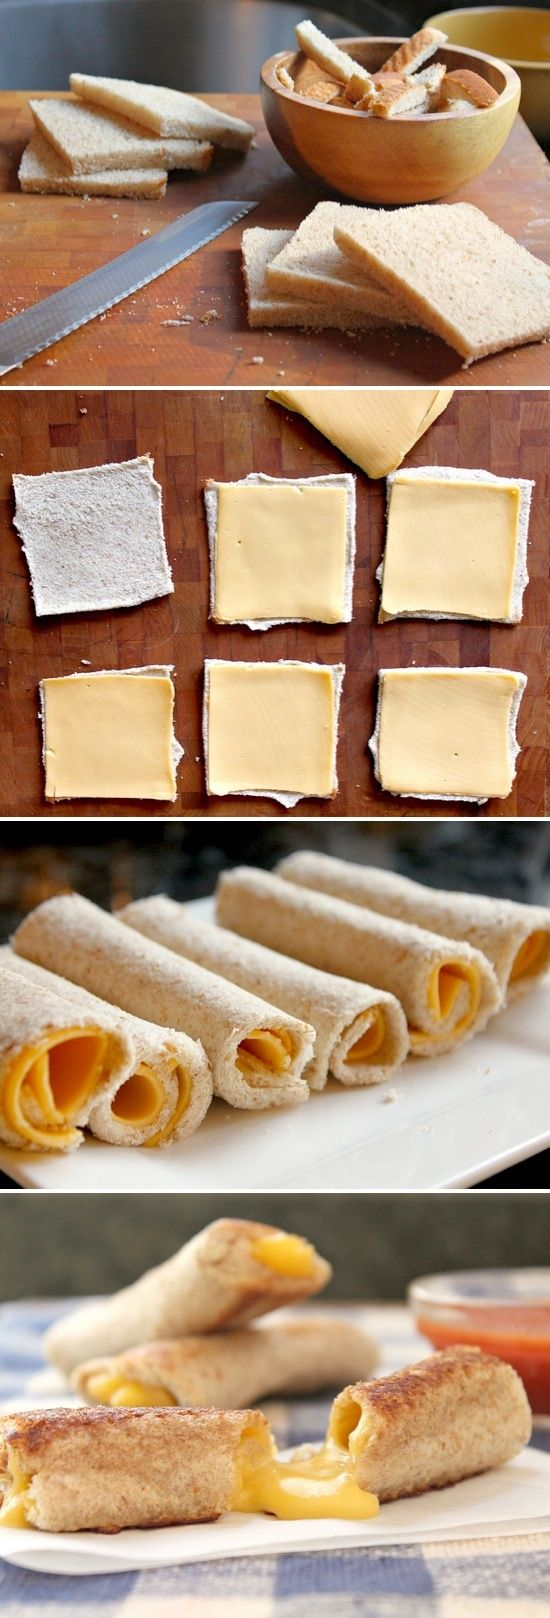 Grilled Cheese Rolls - Perfect For Dipping In Soup